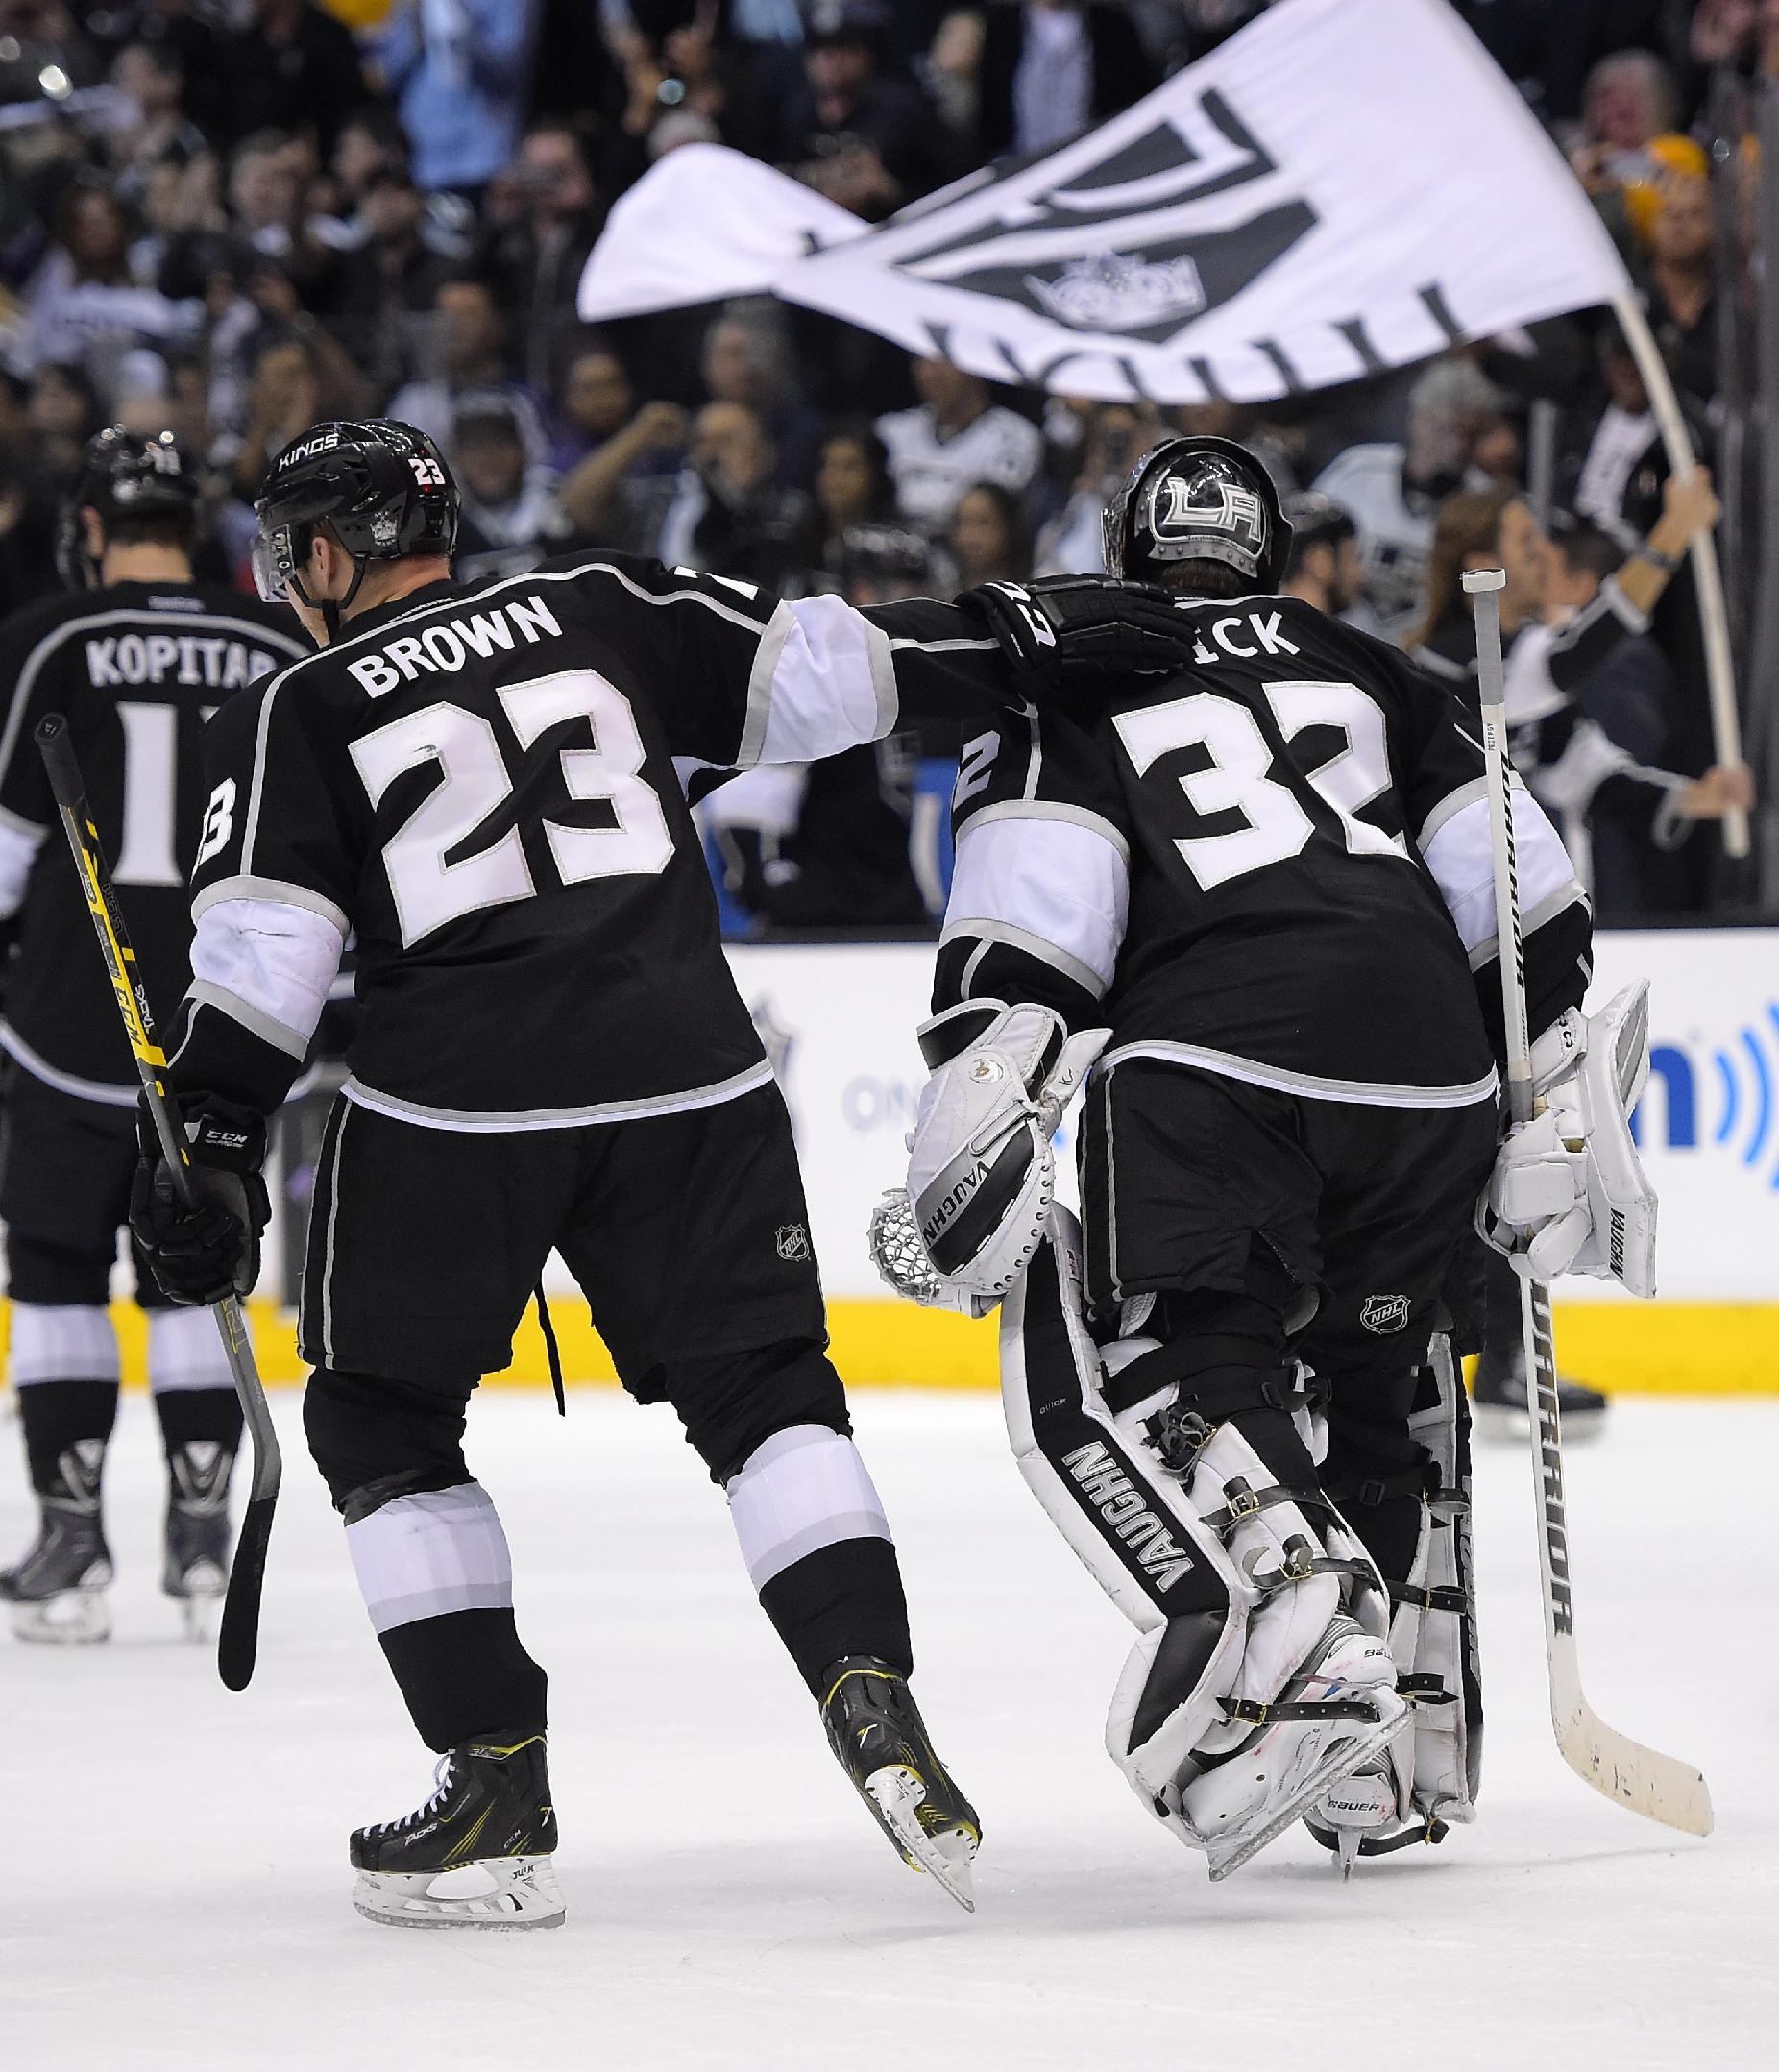 Sharks look to avoid collapse in Game 7 vs. Kings